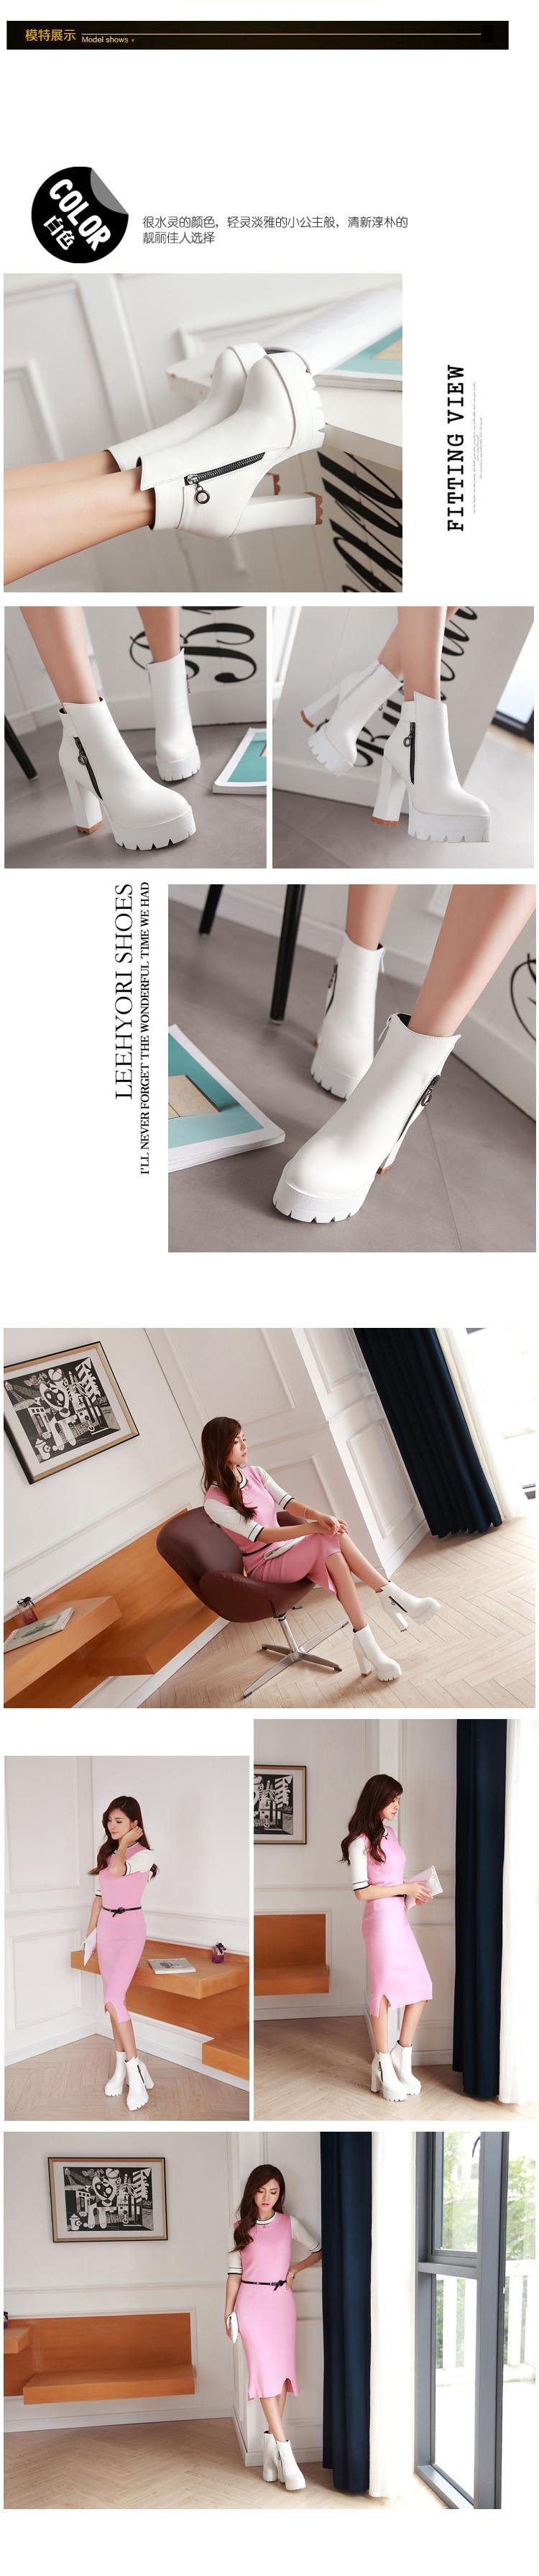 Elegant Zipper Autumn Winter Ladies Retro Style Ankle Boots Fashion Large Size Womens Platform Shoes Chunky High Heel Booties